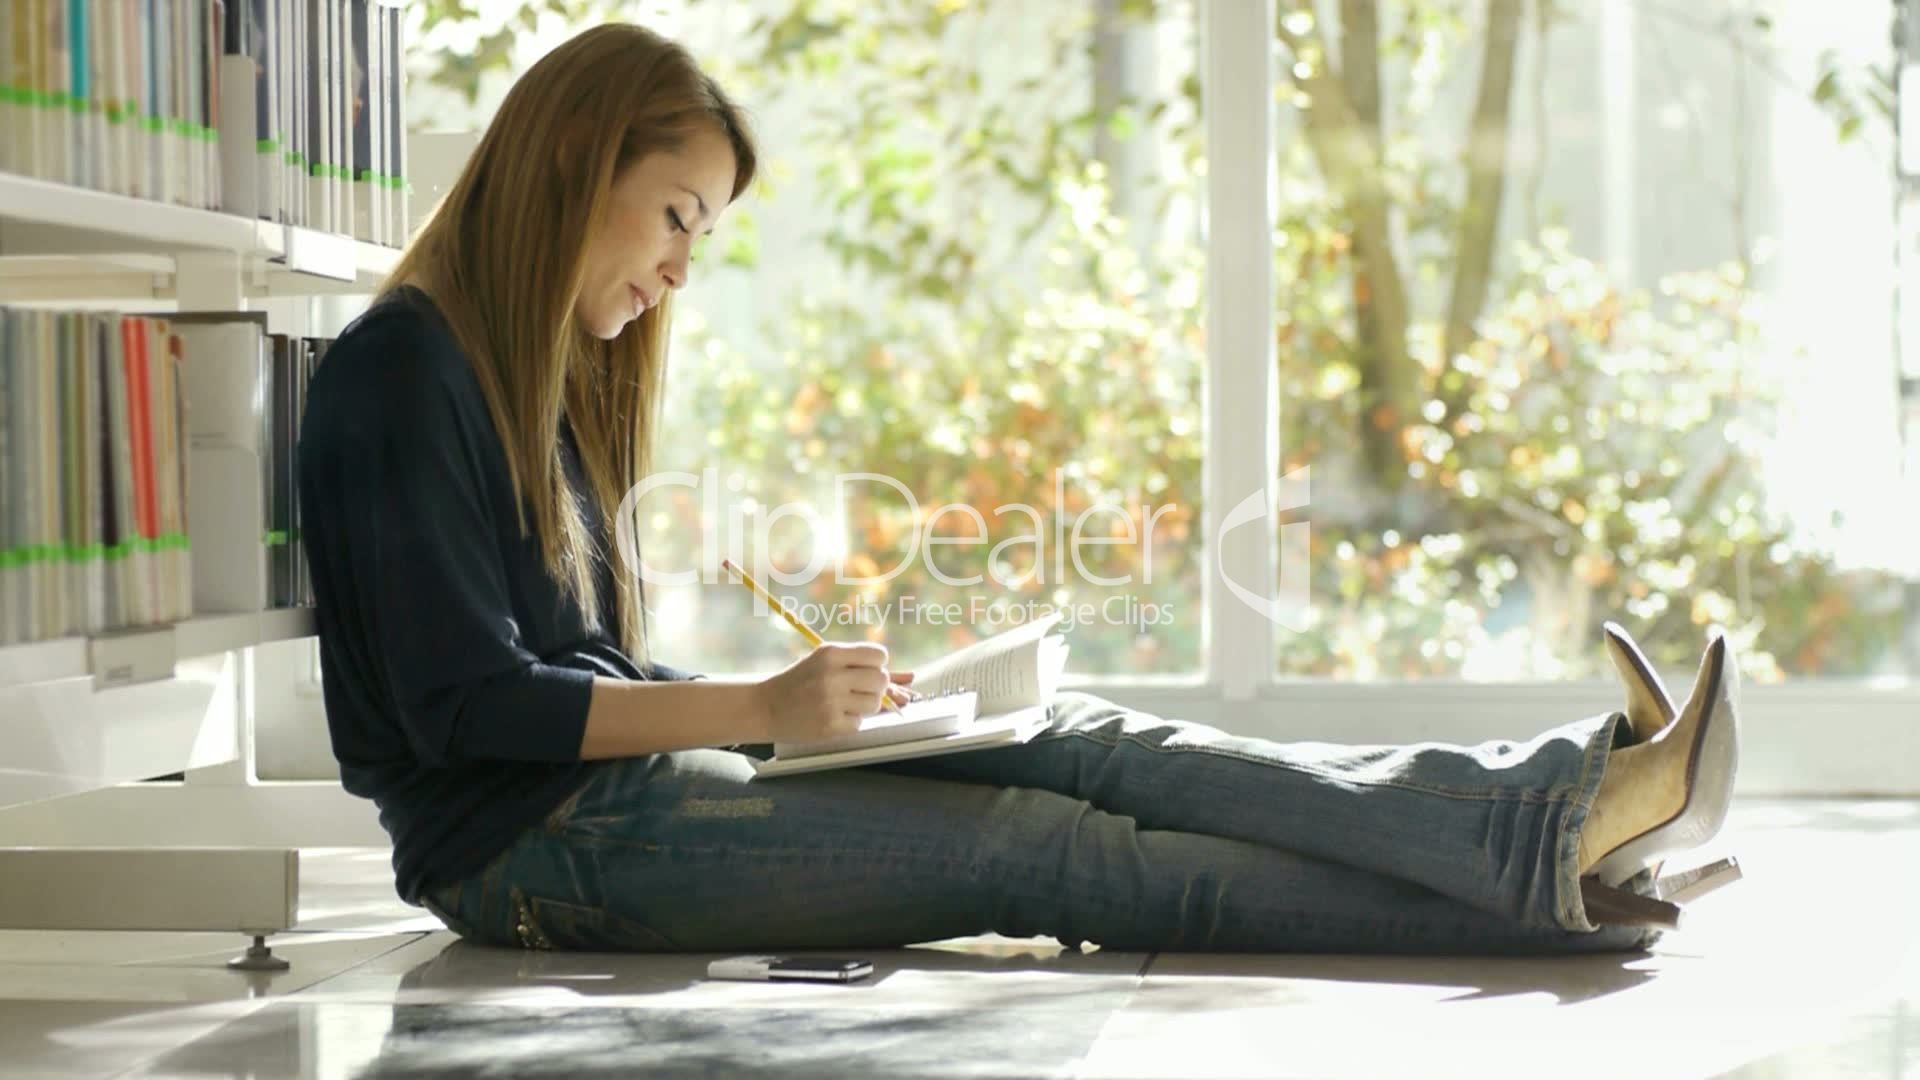 Girl Studying On Floor In Library Royalty Free Video And Stock Footage